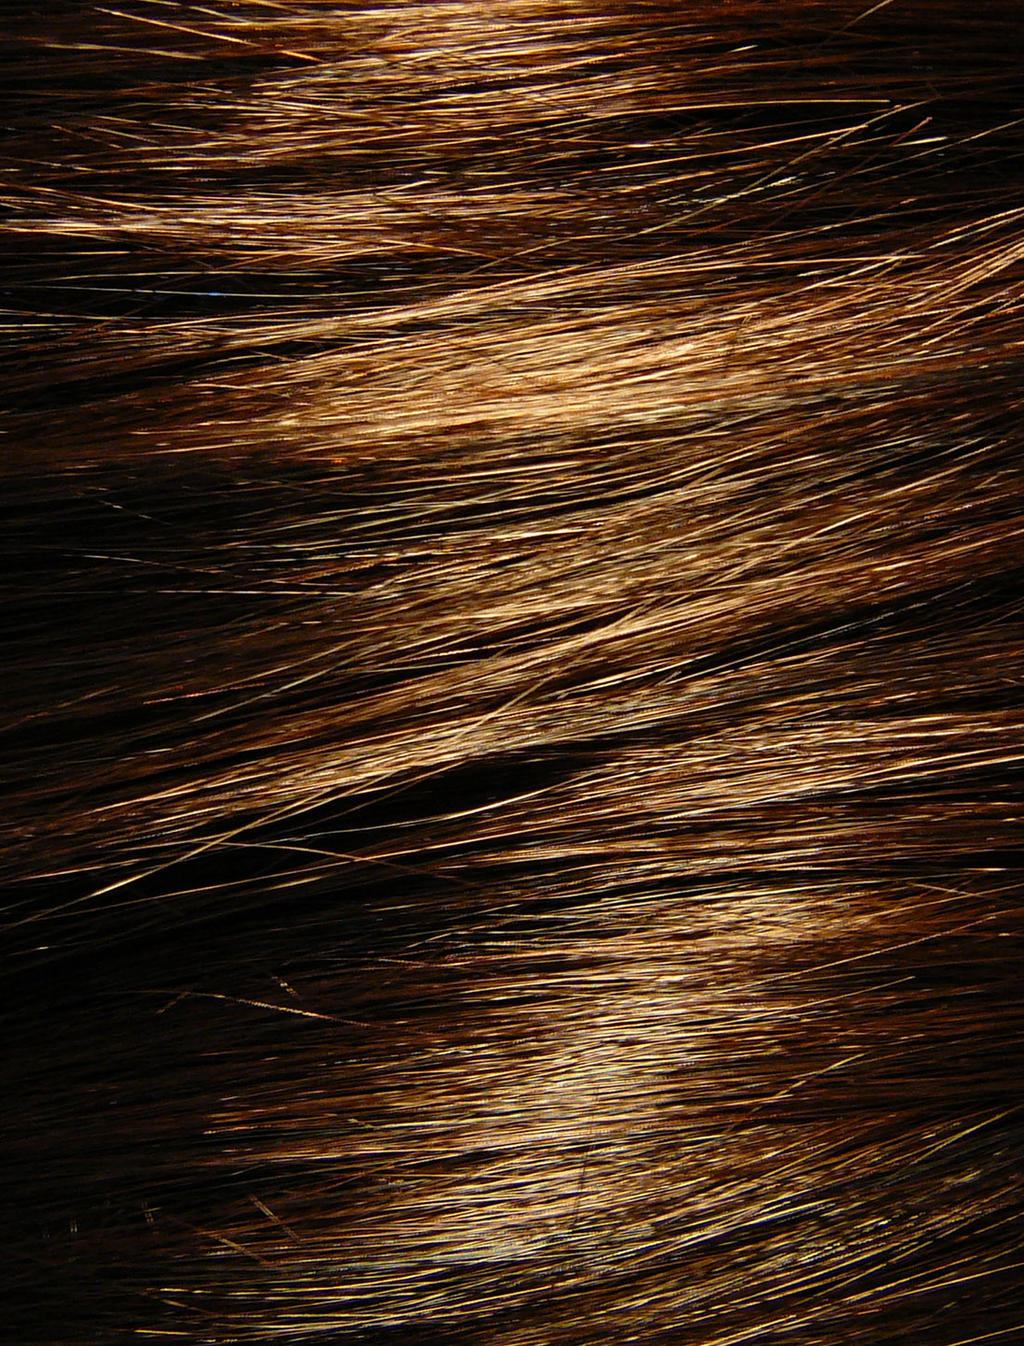 Brown Hair Texture Stock by Enchantedgal-Stock on DeviantArt